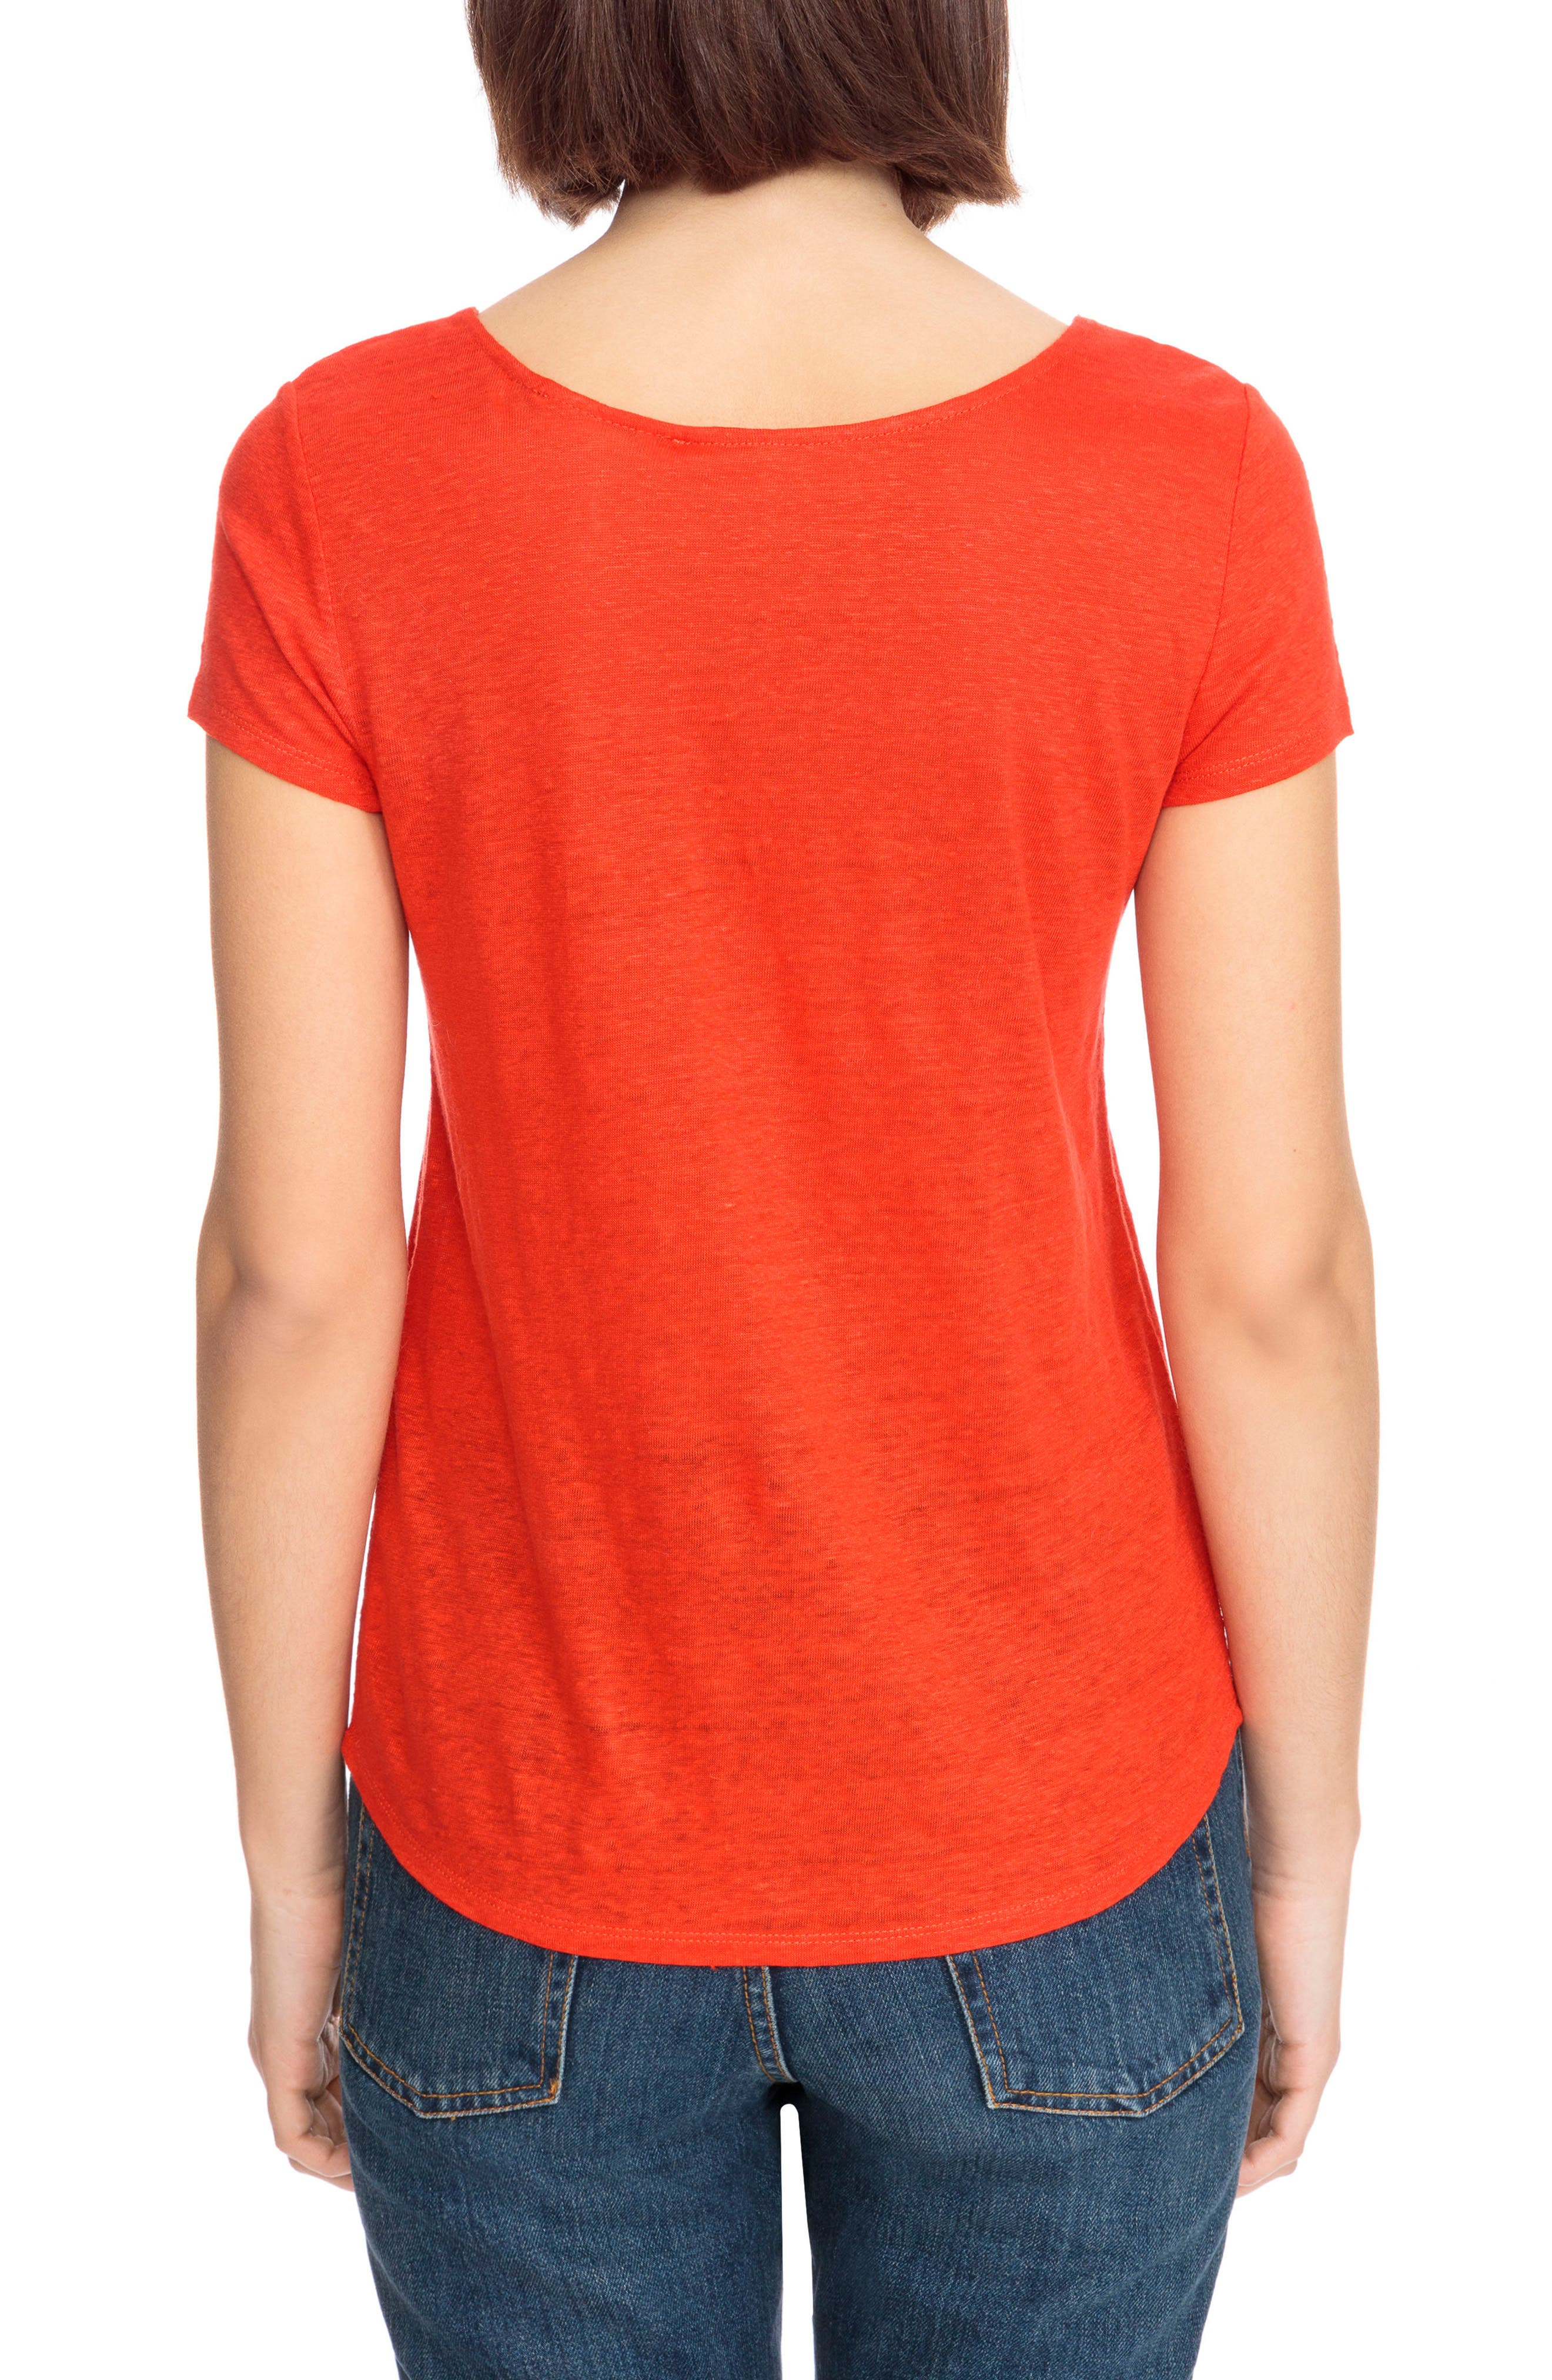 Loly Crochet Neck Linen Tee,                             Alternate thumbnail 3, color,                             Coral Red